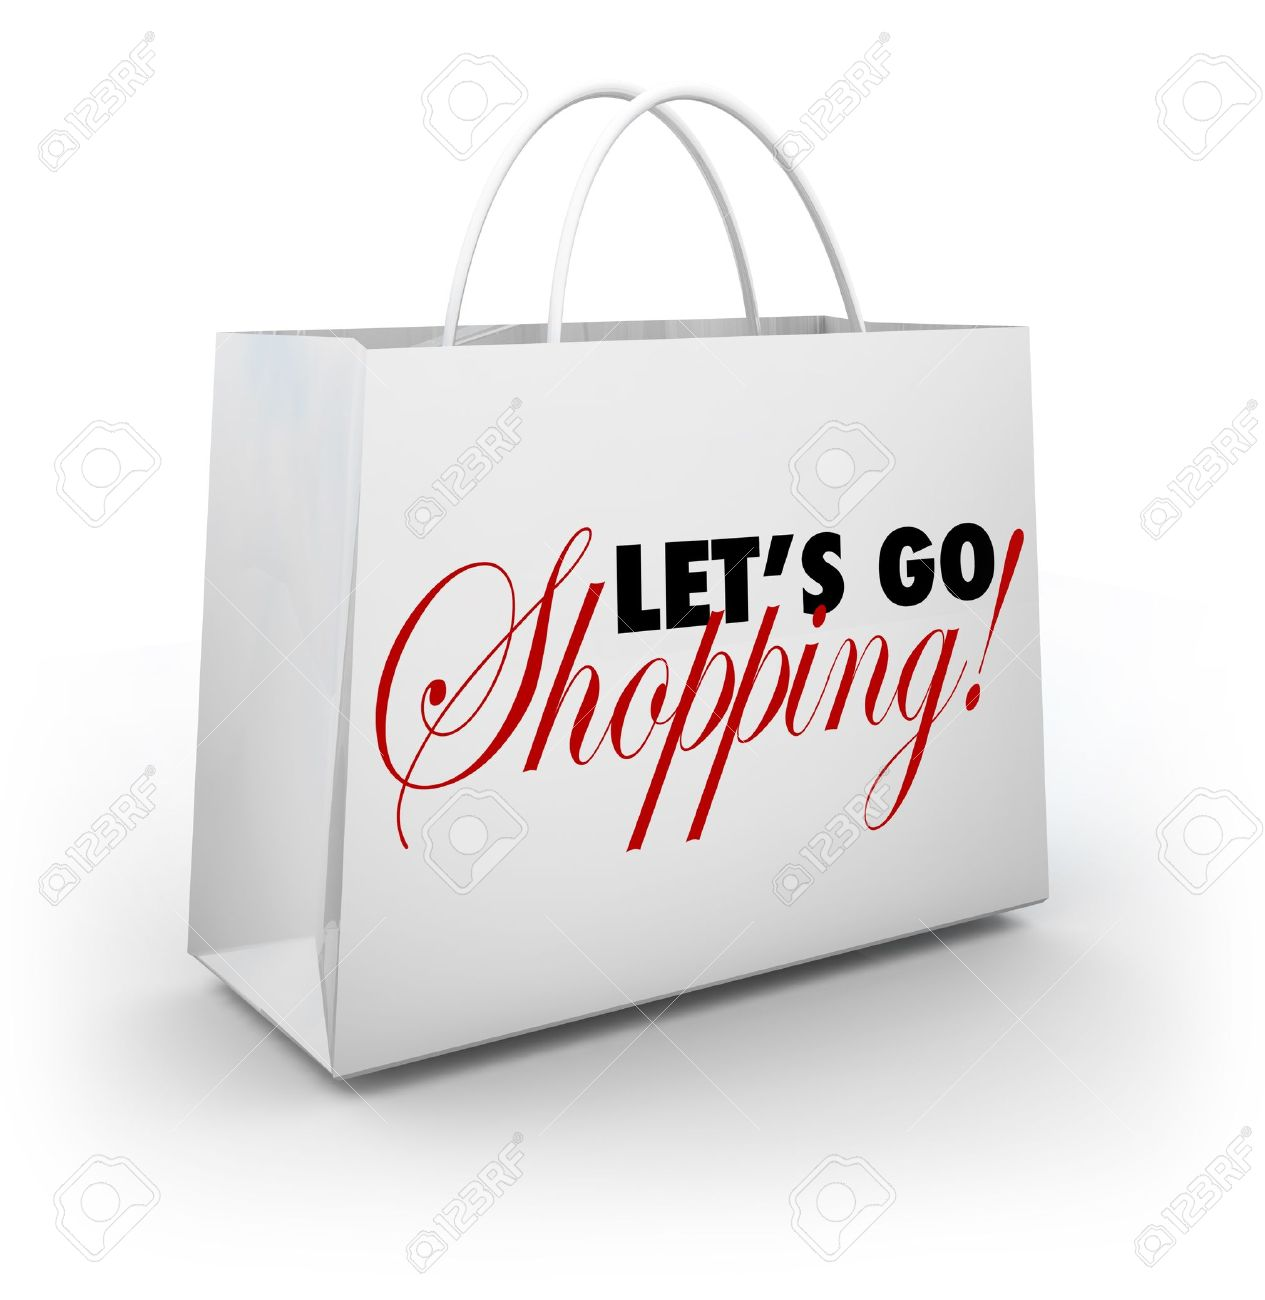 The words Let's Go Shopping on a white shopping bag for buying merchandise at a store during a sale or special clearance savings event Stock Photo - 18565299